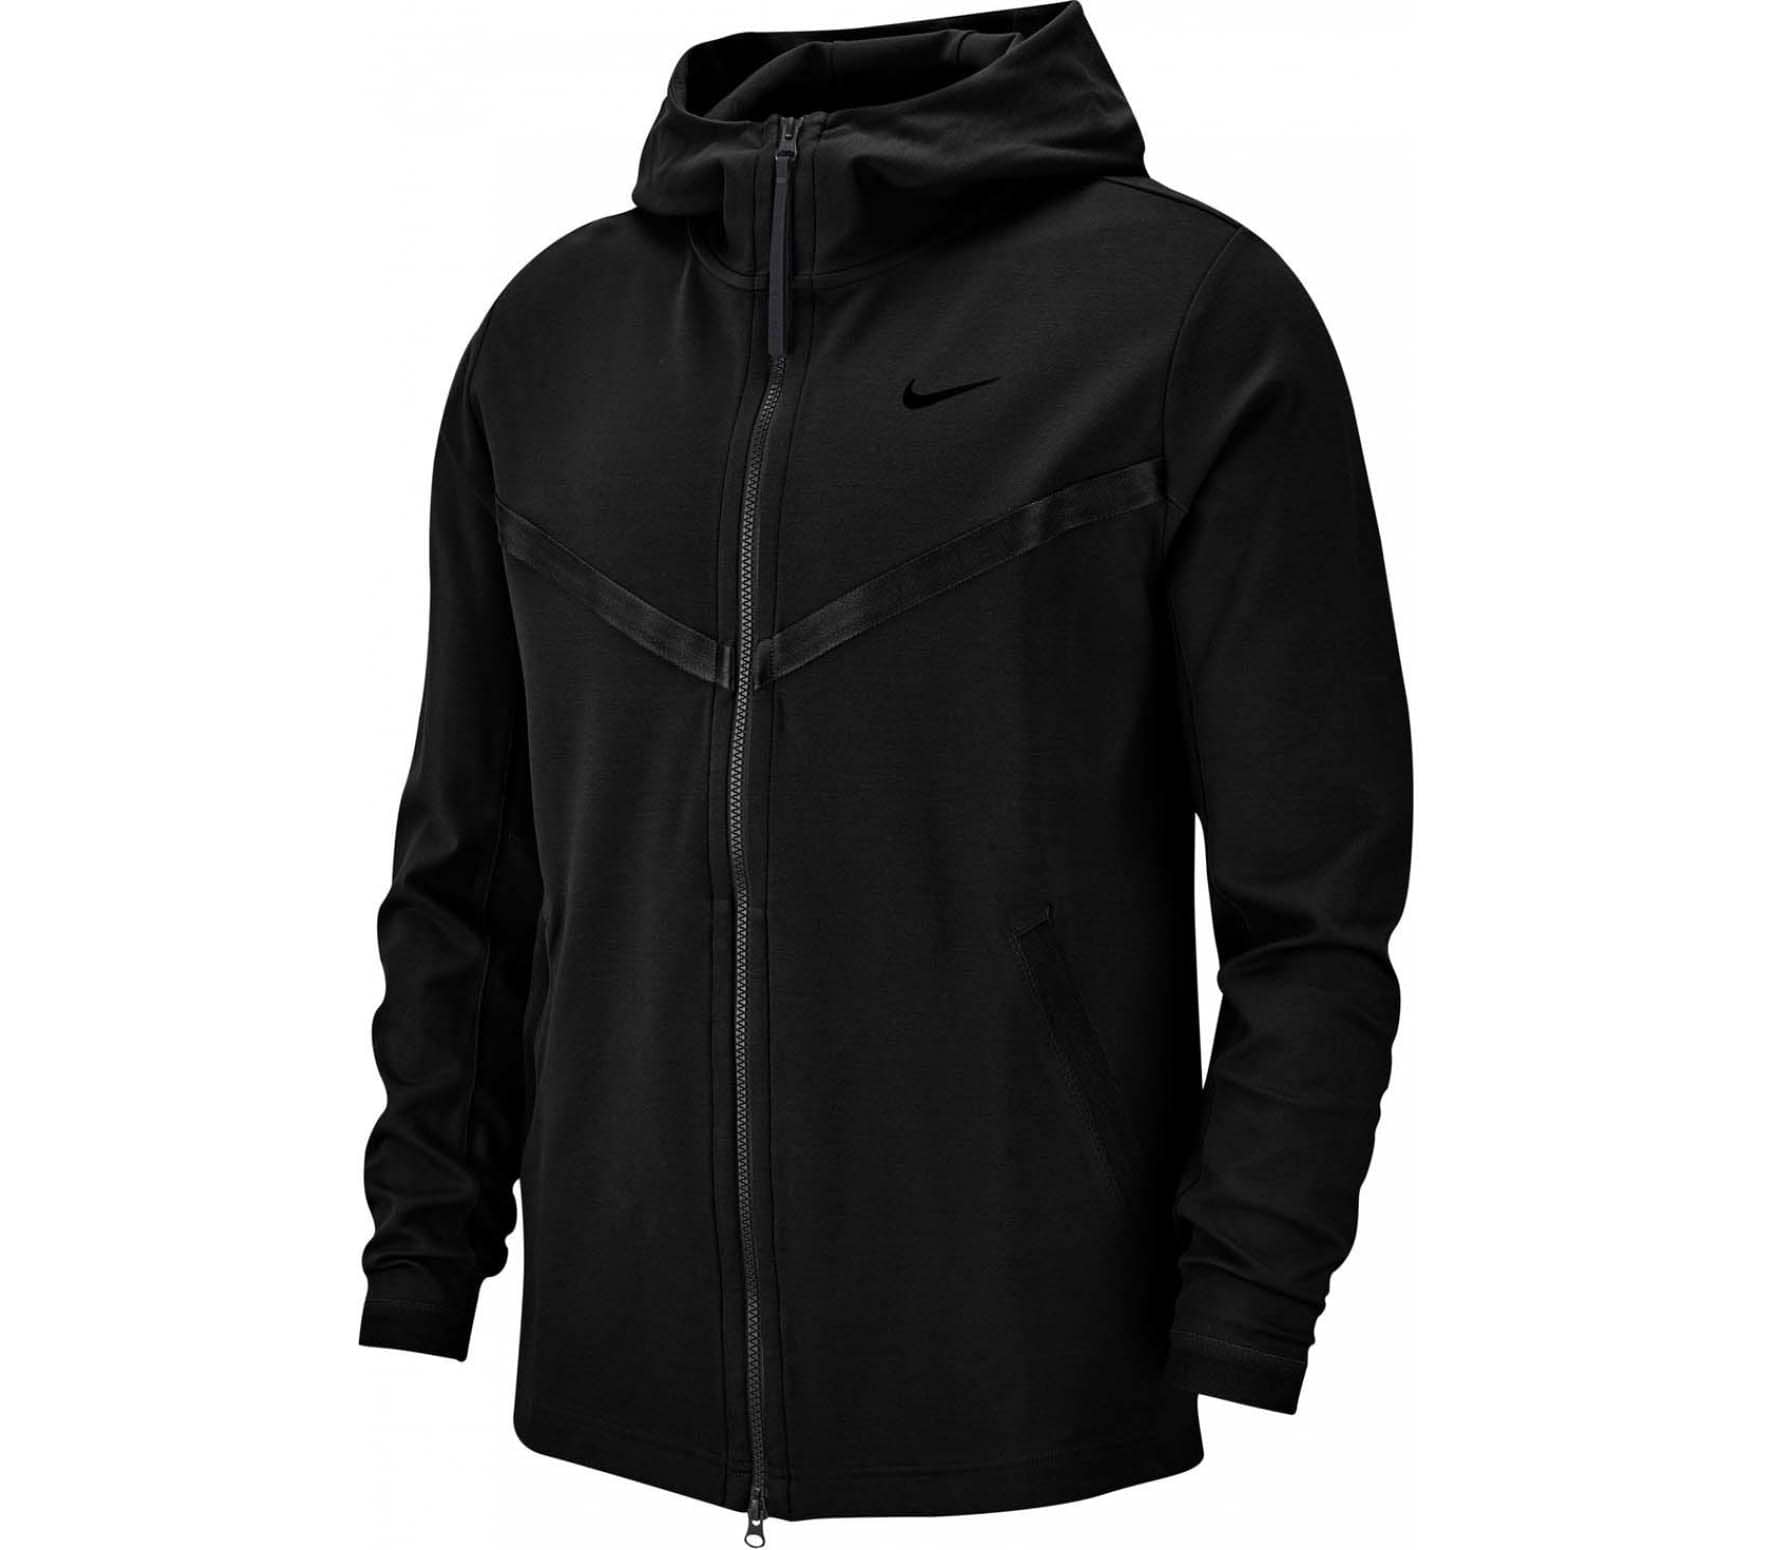 Tech Pack Herren Sweatjacke